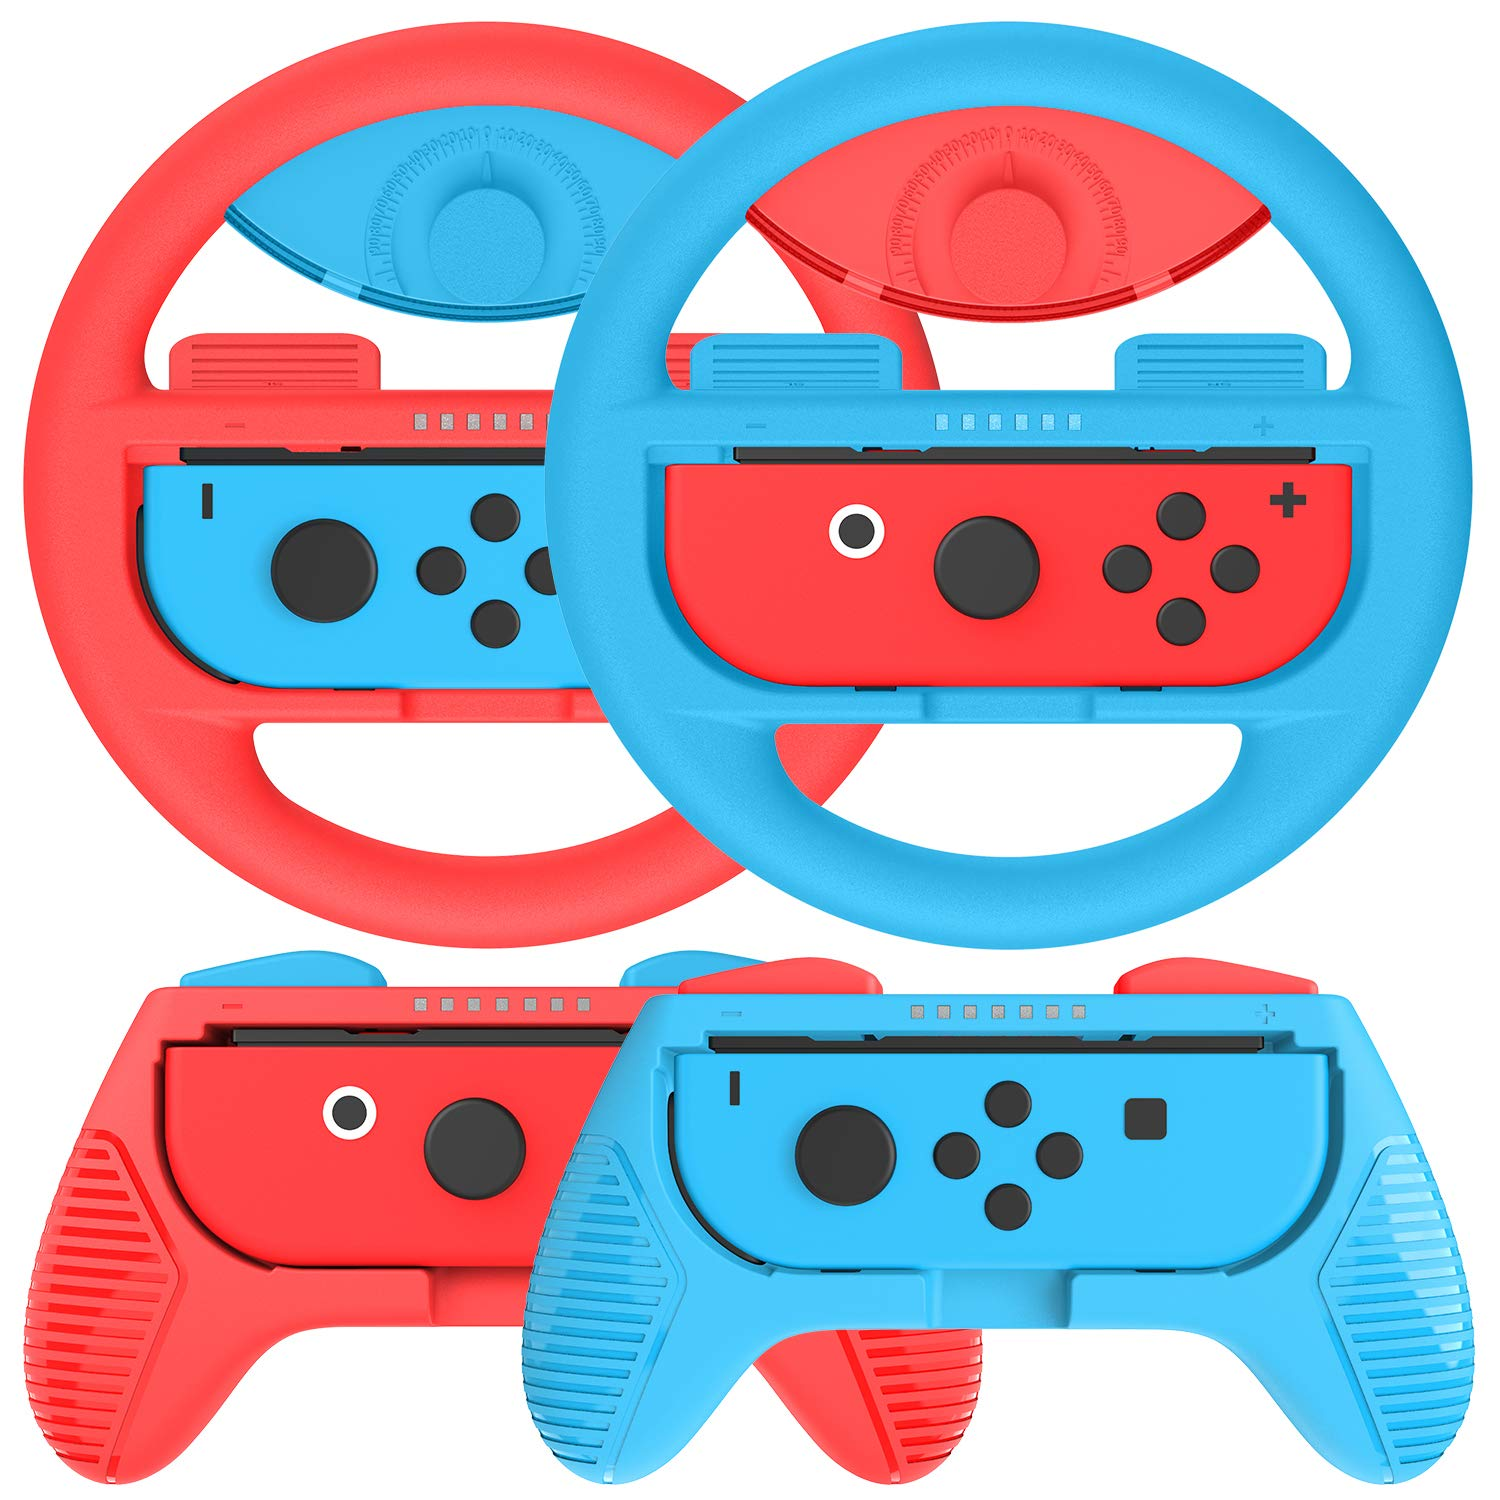 momen Grips Kit for Nintendo Switch Joy Con; Nintendo Switch Joy Con Grip, Anti-Slip Joy Con Wheel for Joy Con (4 Pack) Blue&Red by momen